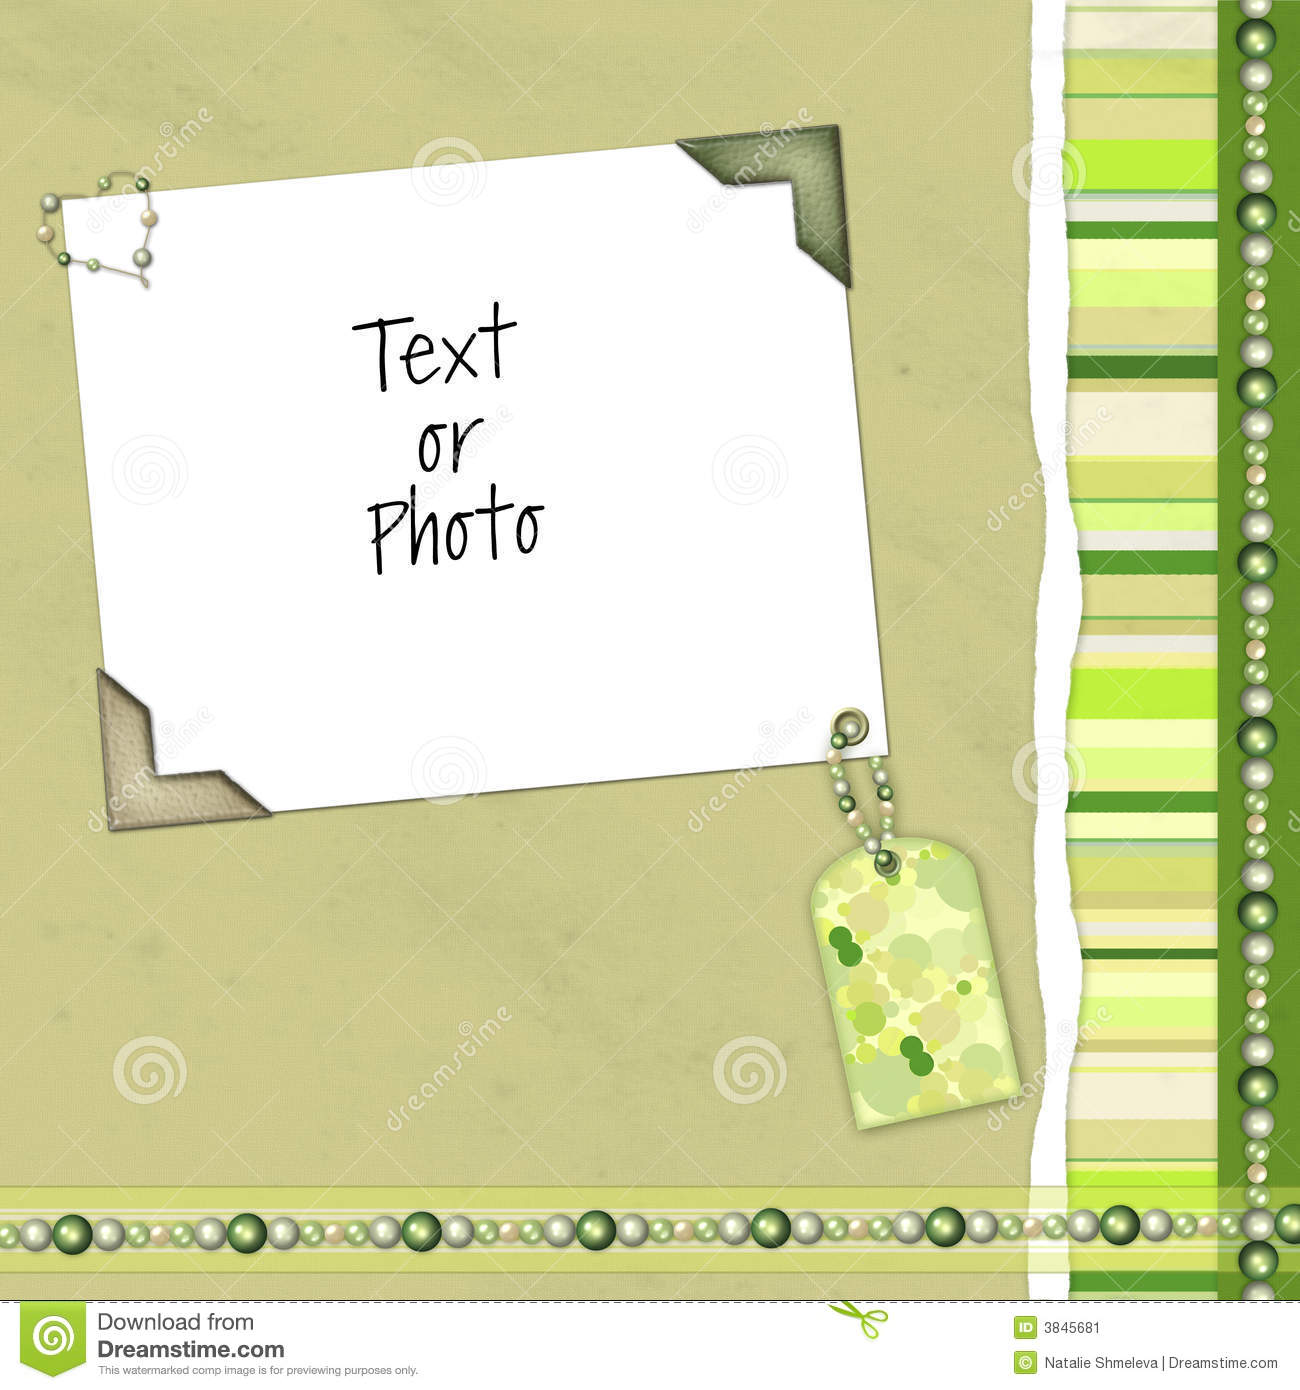 Green Scrapbook Layout With Colorful Decorations For Your Photo Or